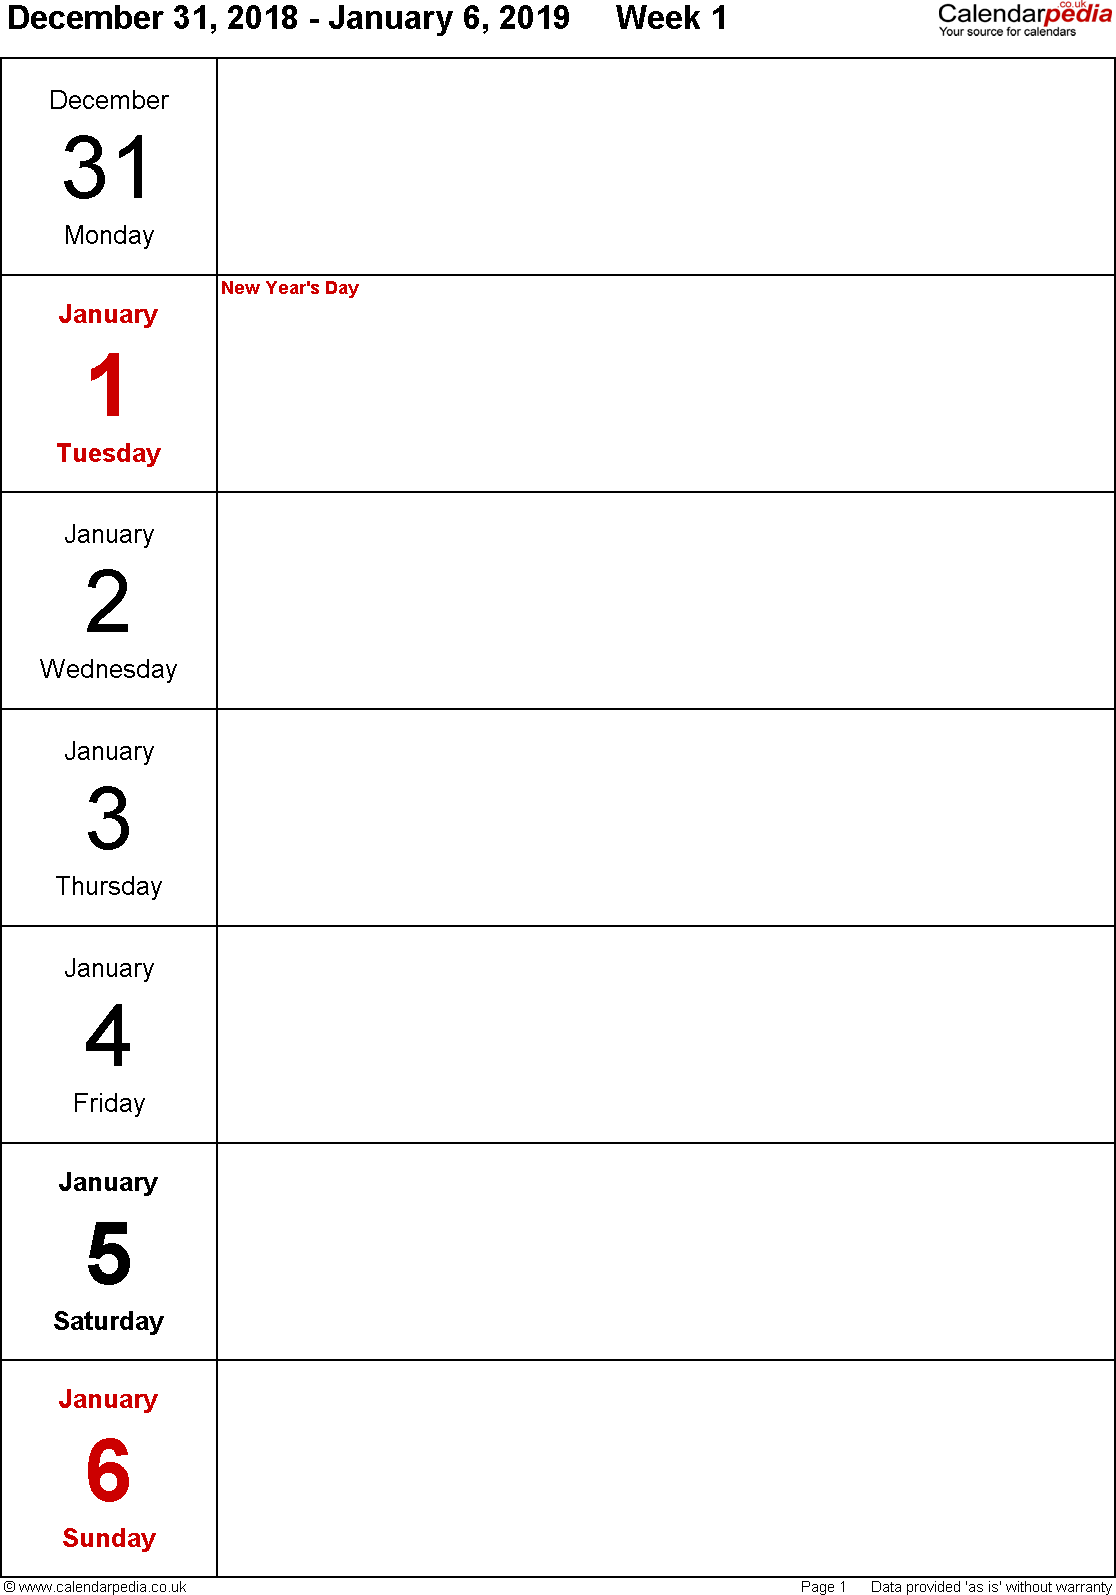 PDF template 10: Weekly calendar 2019, portrait orientation, days vertically, 53 pages (1 calendar week on 1 page)